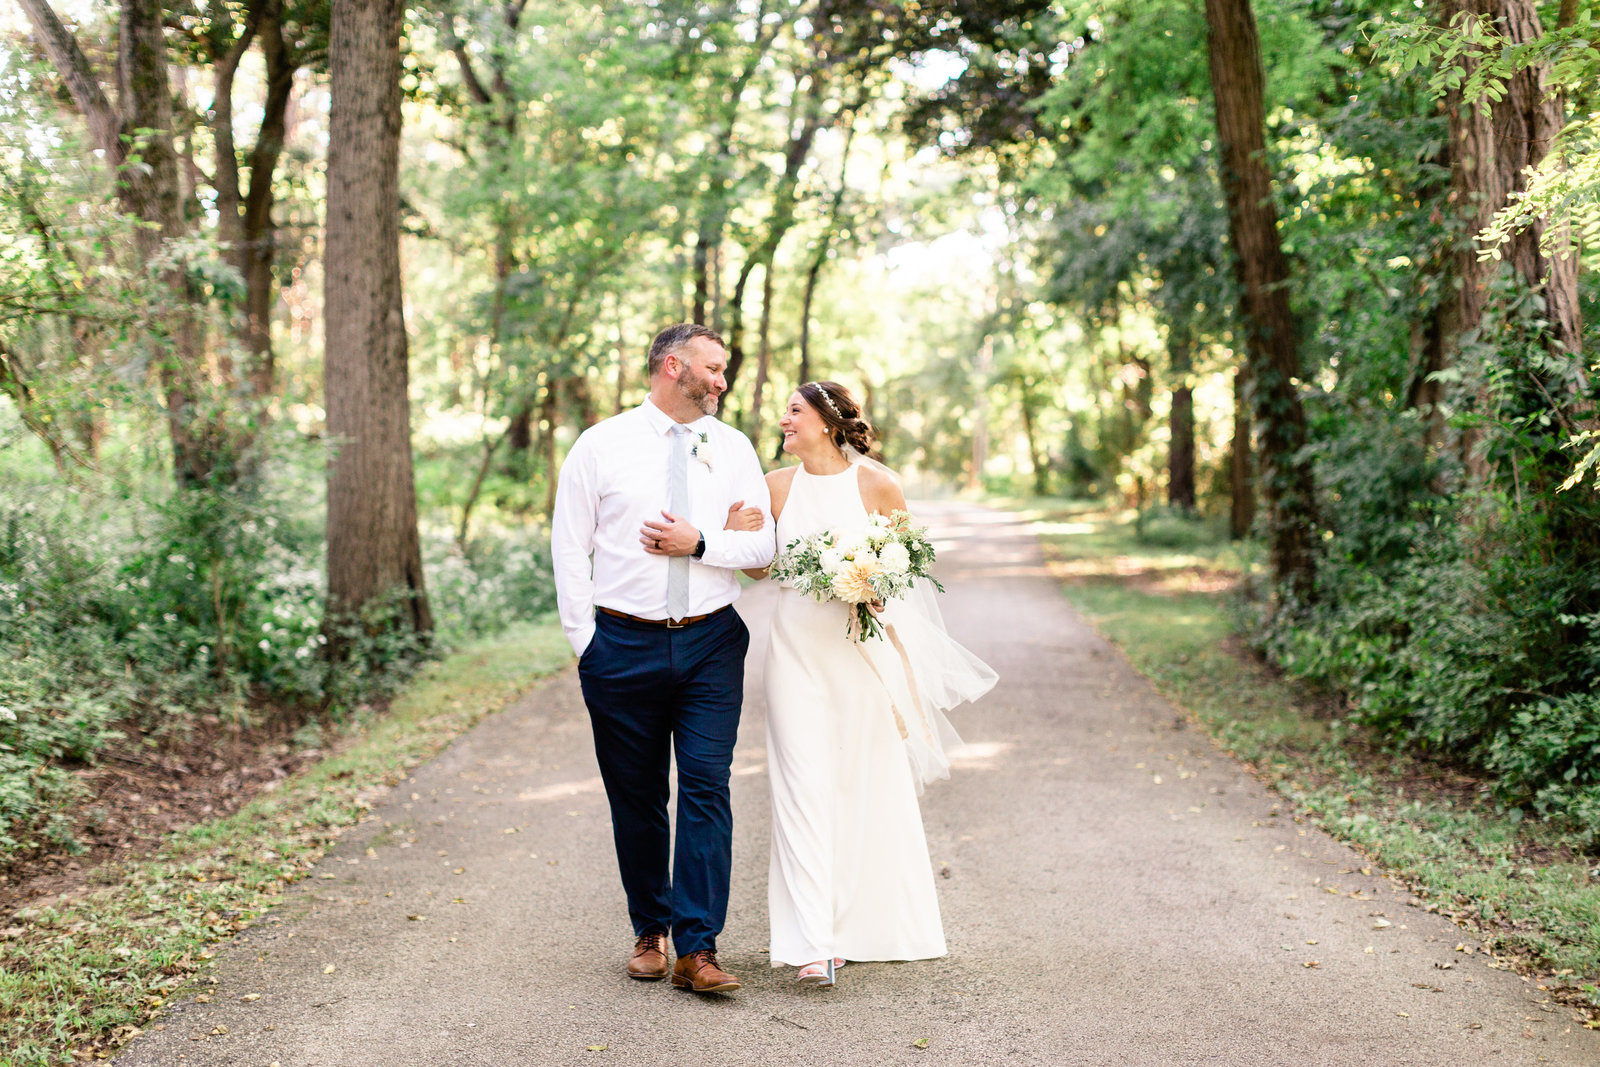 Franklin Tennessee Wedding photographer | Amy Allmand photography